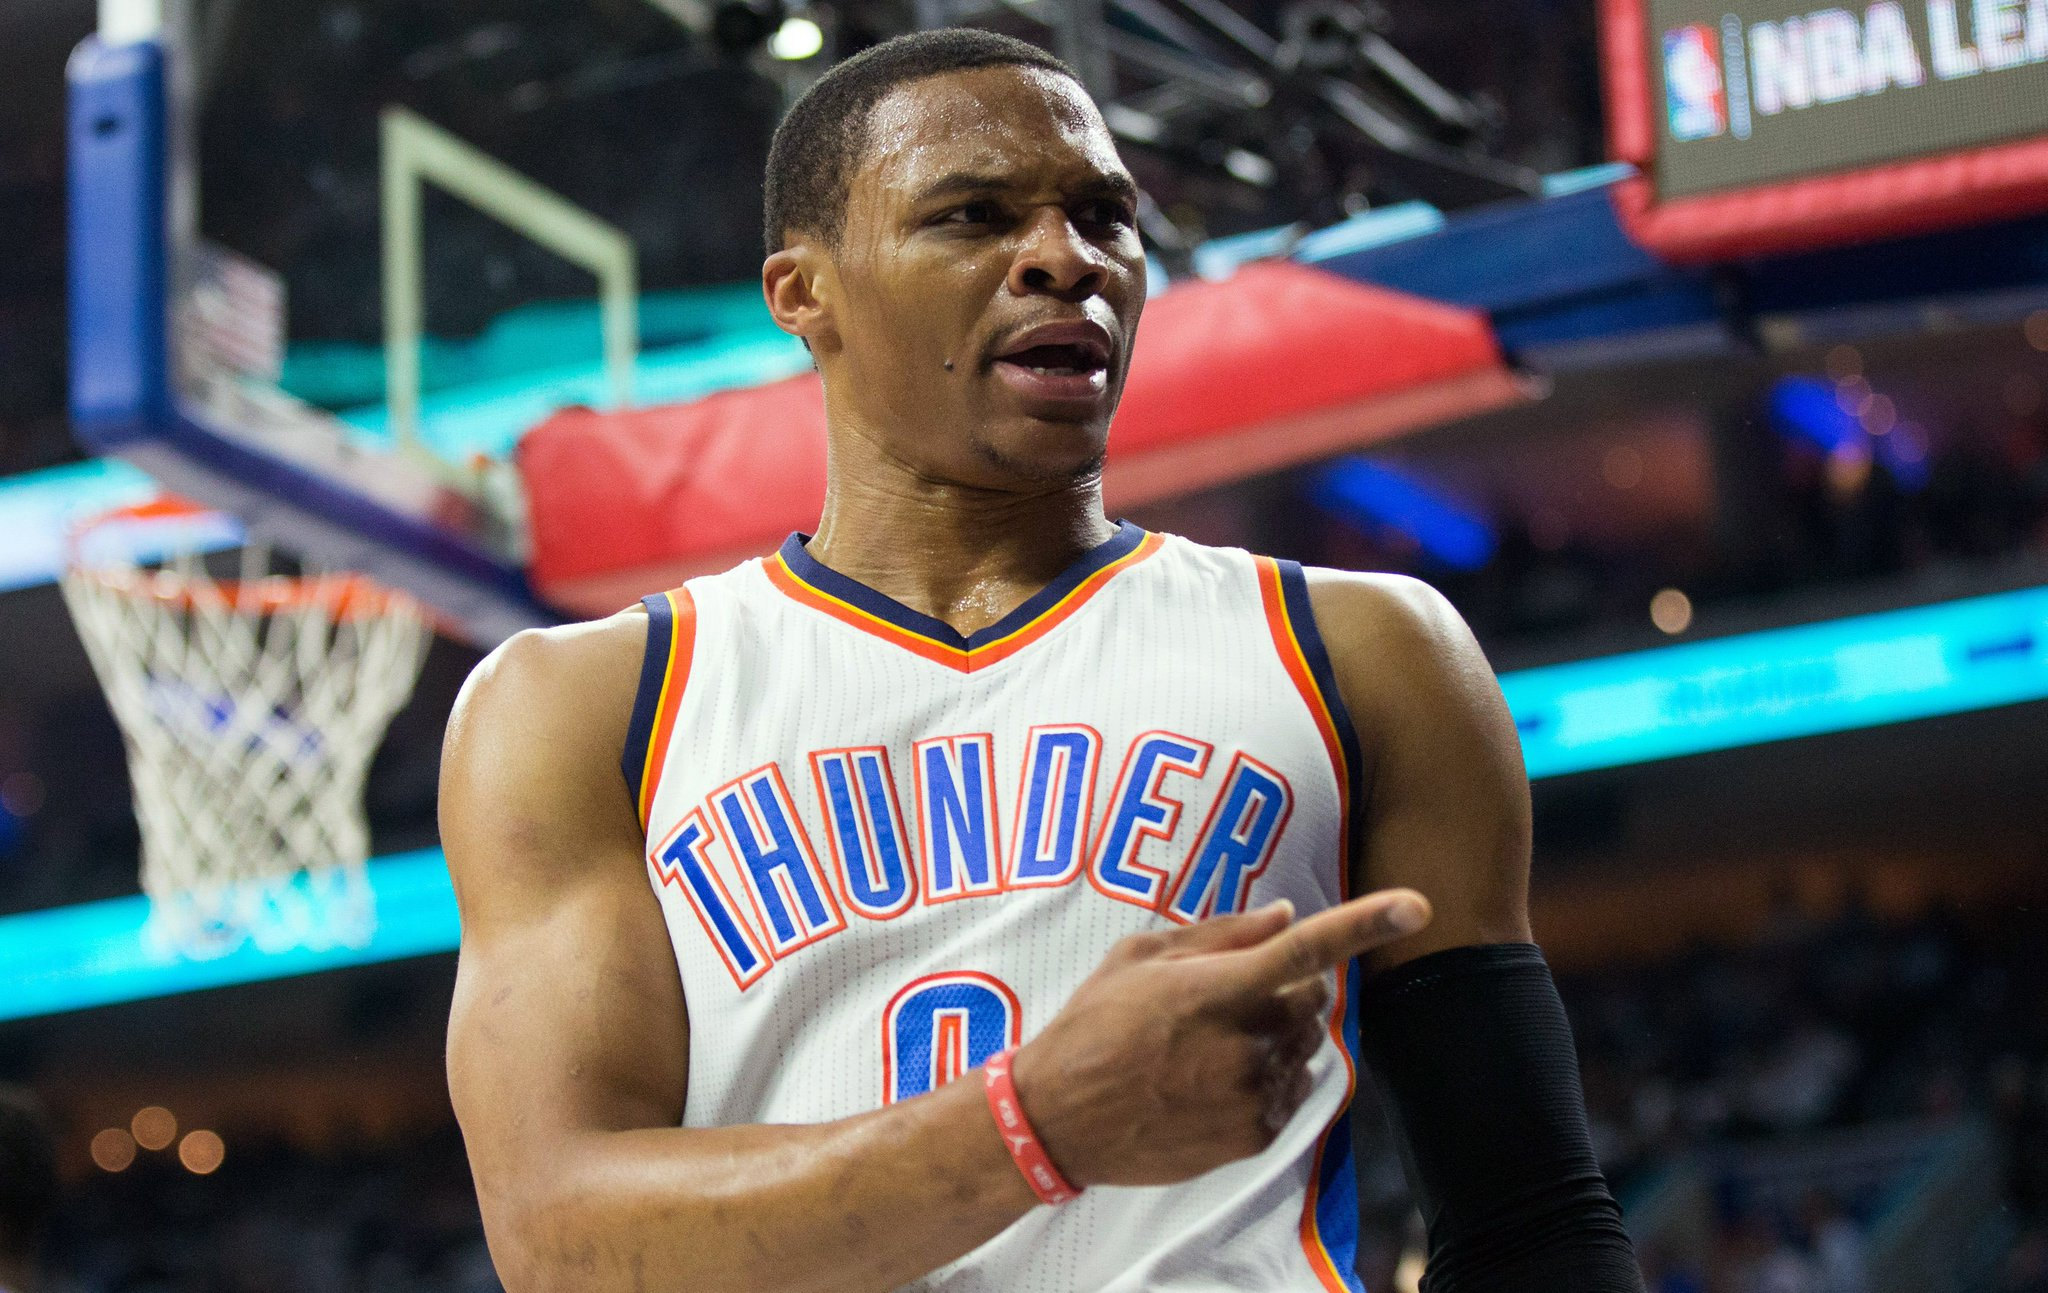 Brodie season in full effect   16 points, 7 rebounds & 6 assists at the half against the Sixers https://t.co/JRIBZBFCa0